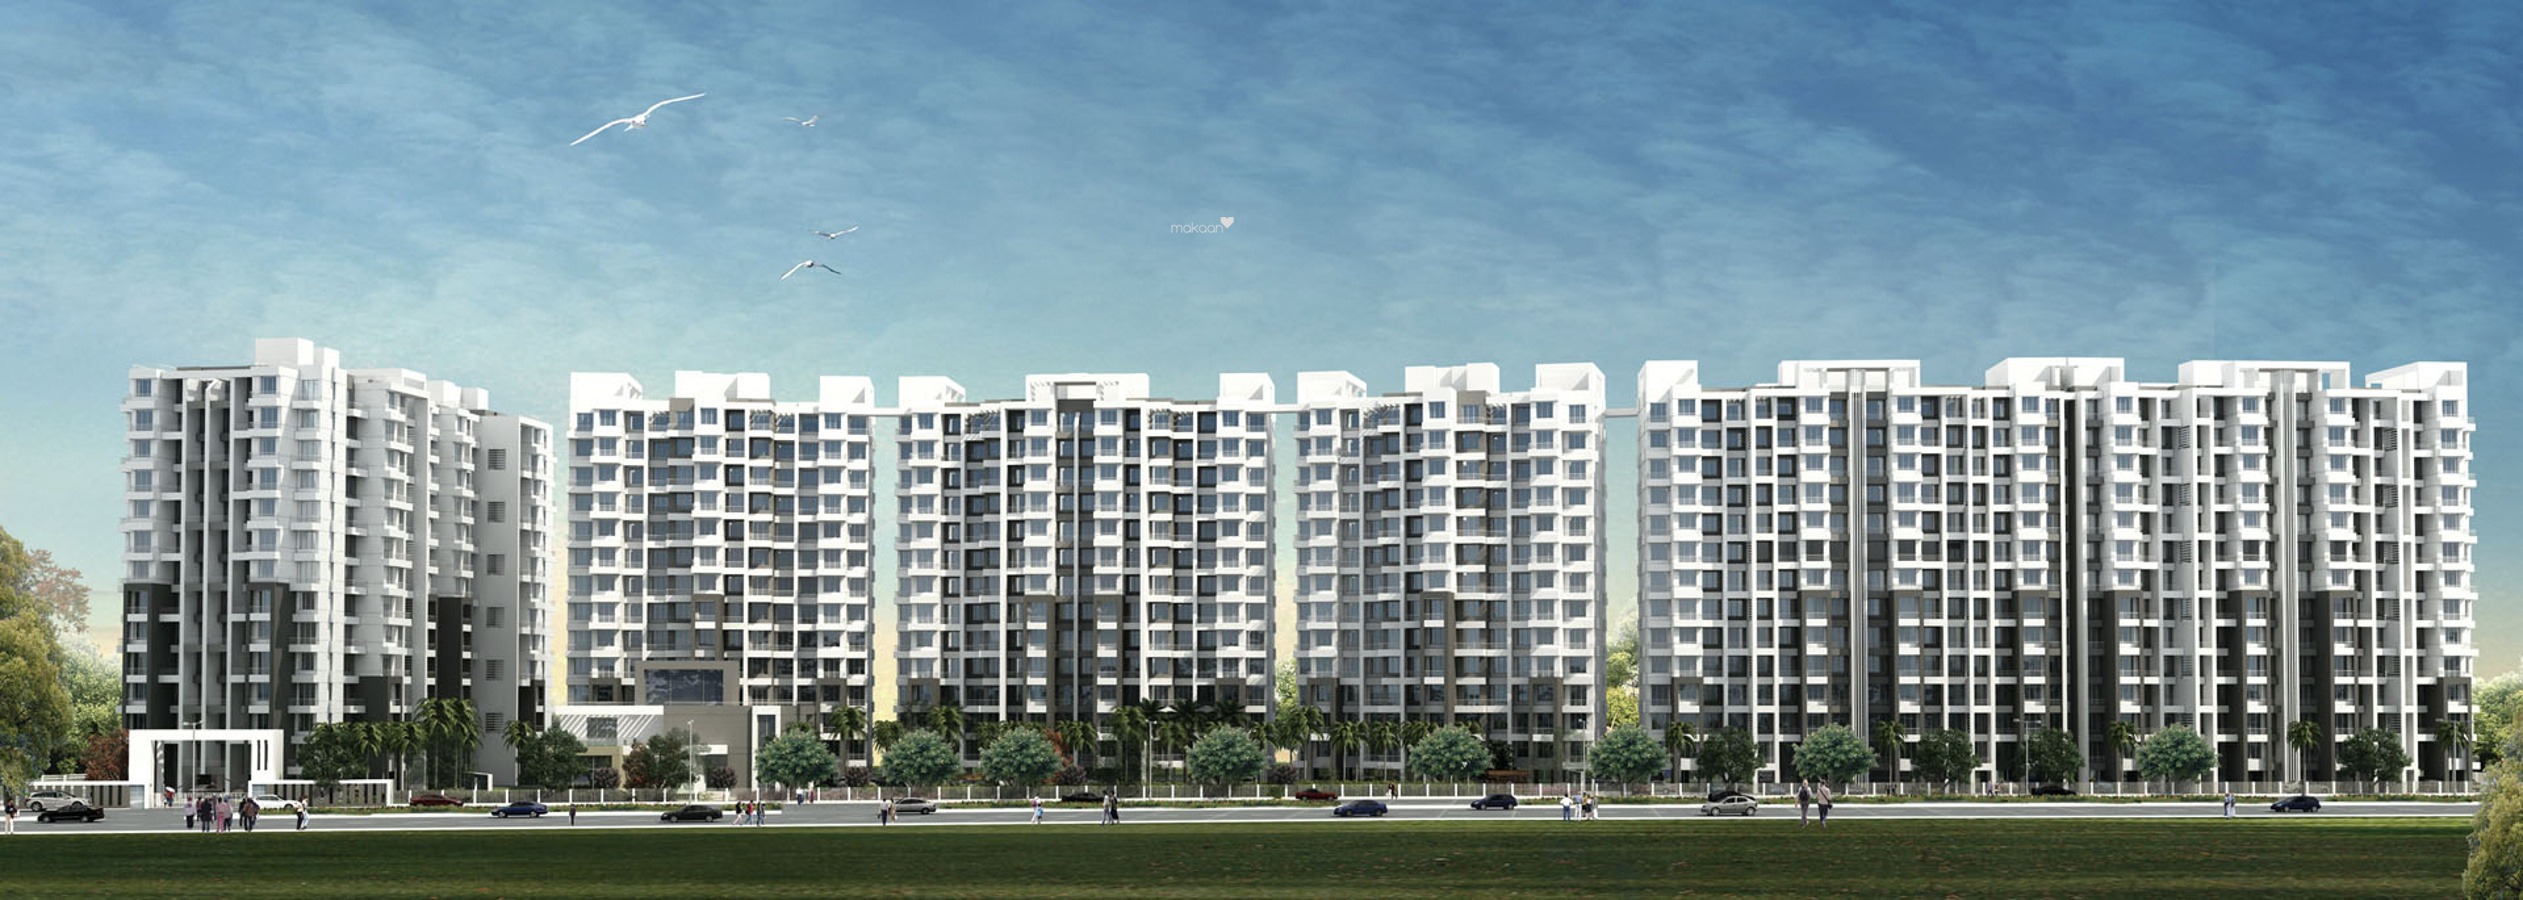 750 sq ft 1BHK 1BHK+1T (750 sq ft) Property By Proptiger In Majestique City, Wagholi